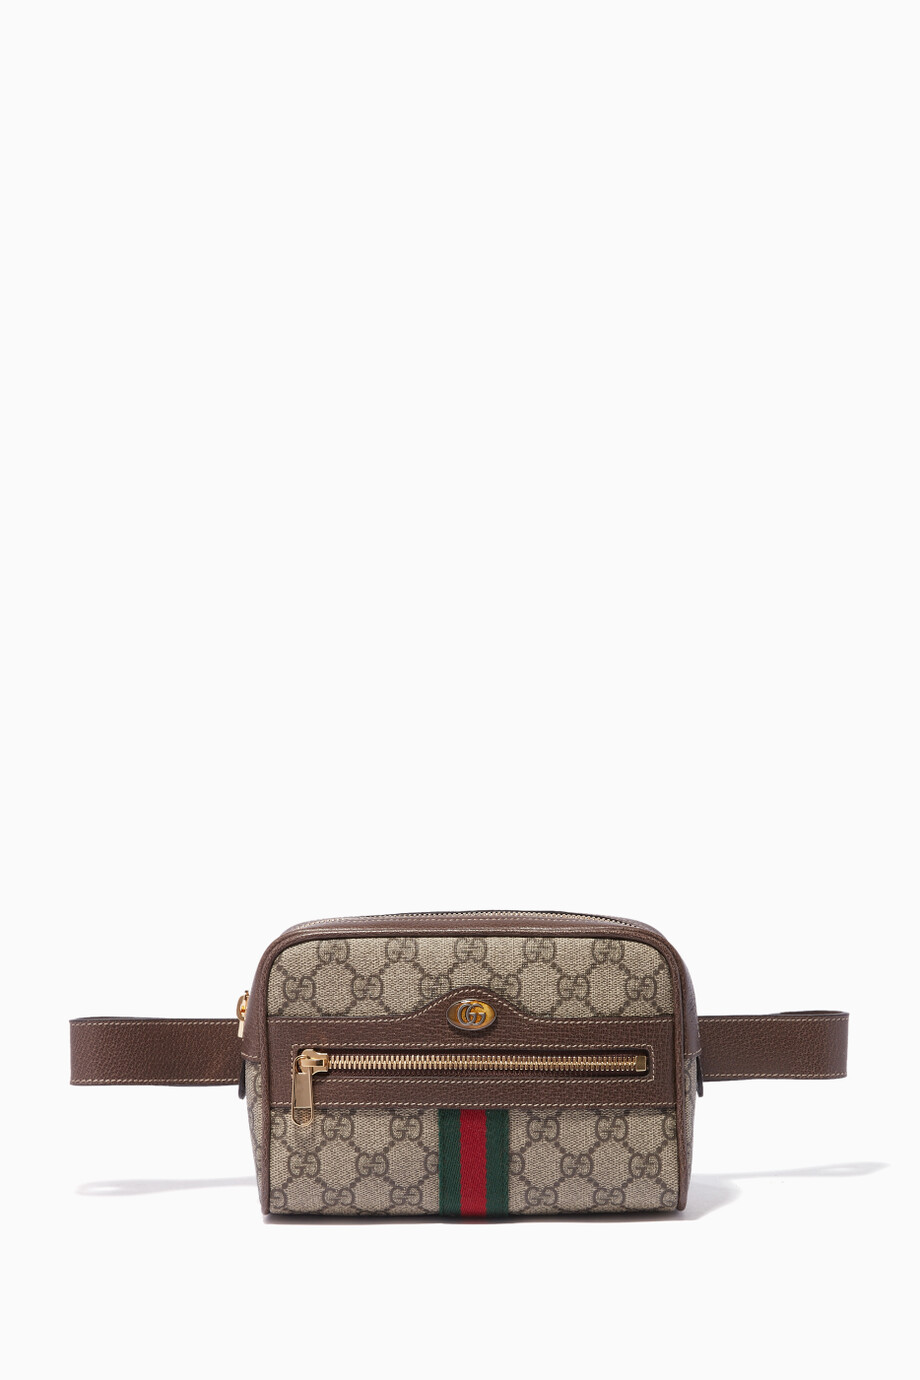 9b6863509e9 Shop Gucci Neutral Beige Ophidia GG Supreme Mini Belt Bag for Women ...